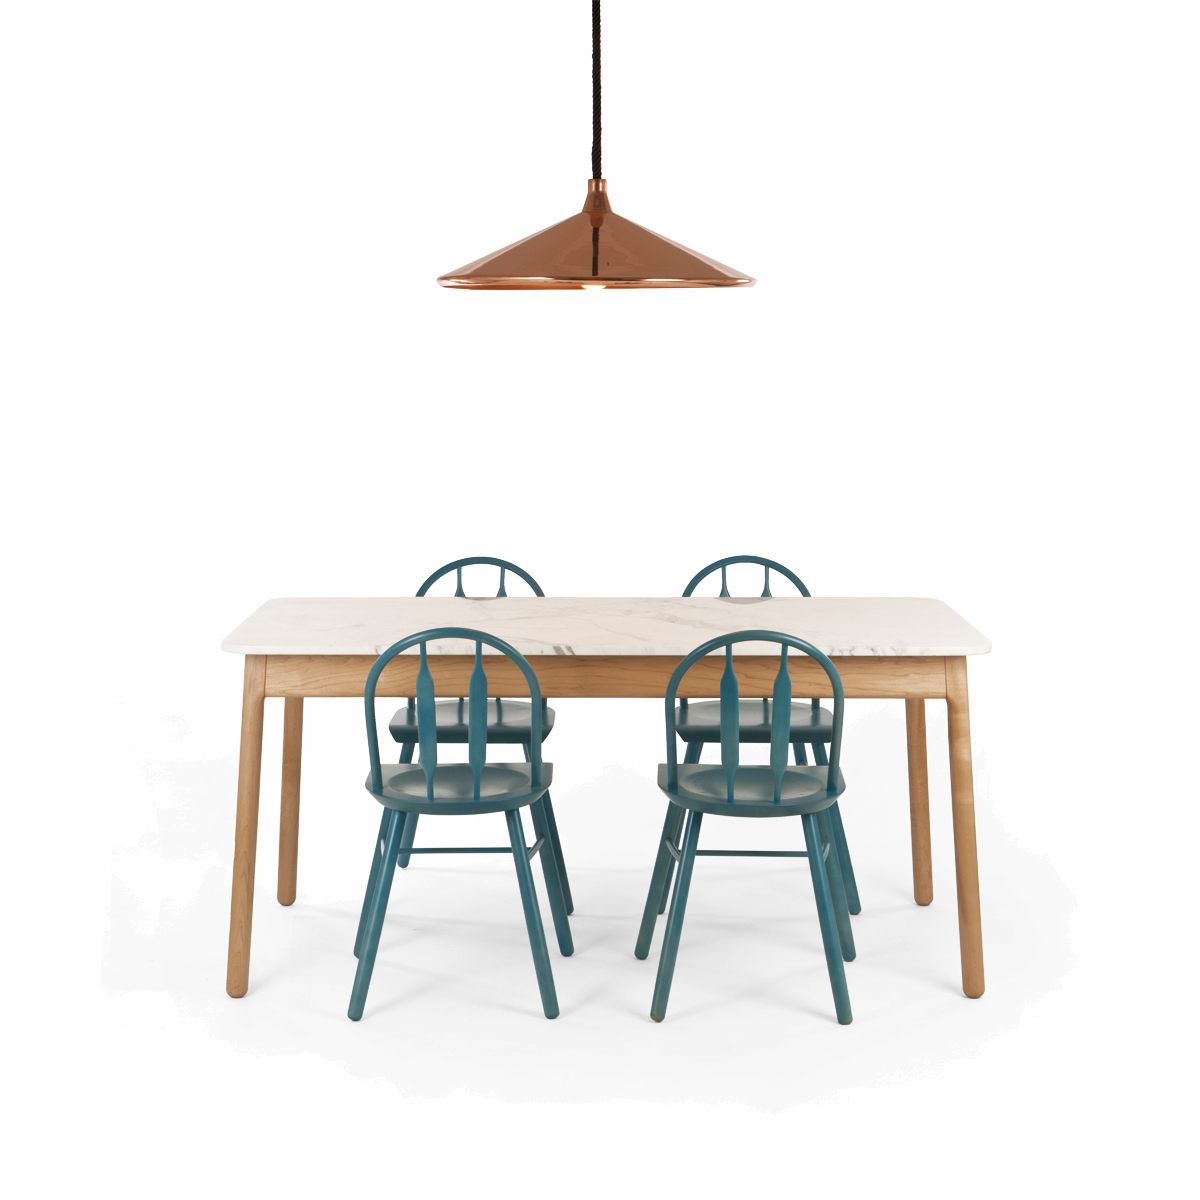 01 mattermade farm table with windsor chairs